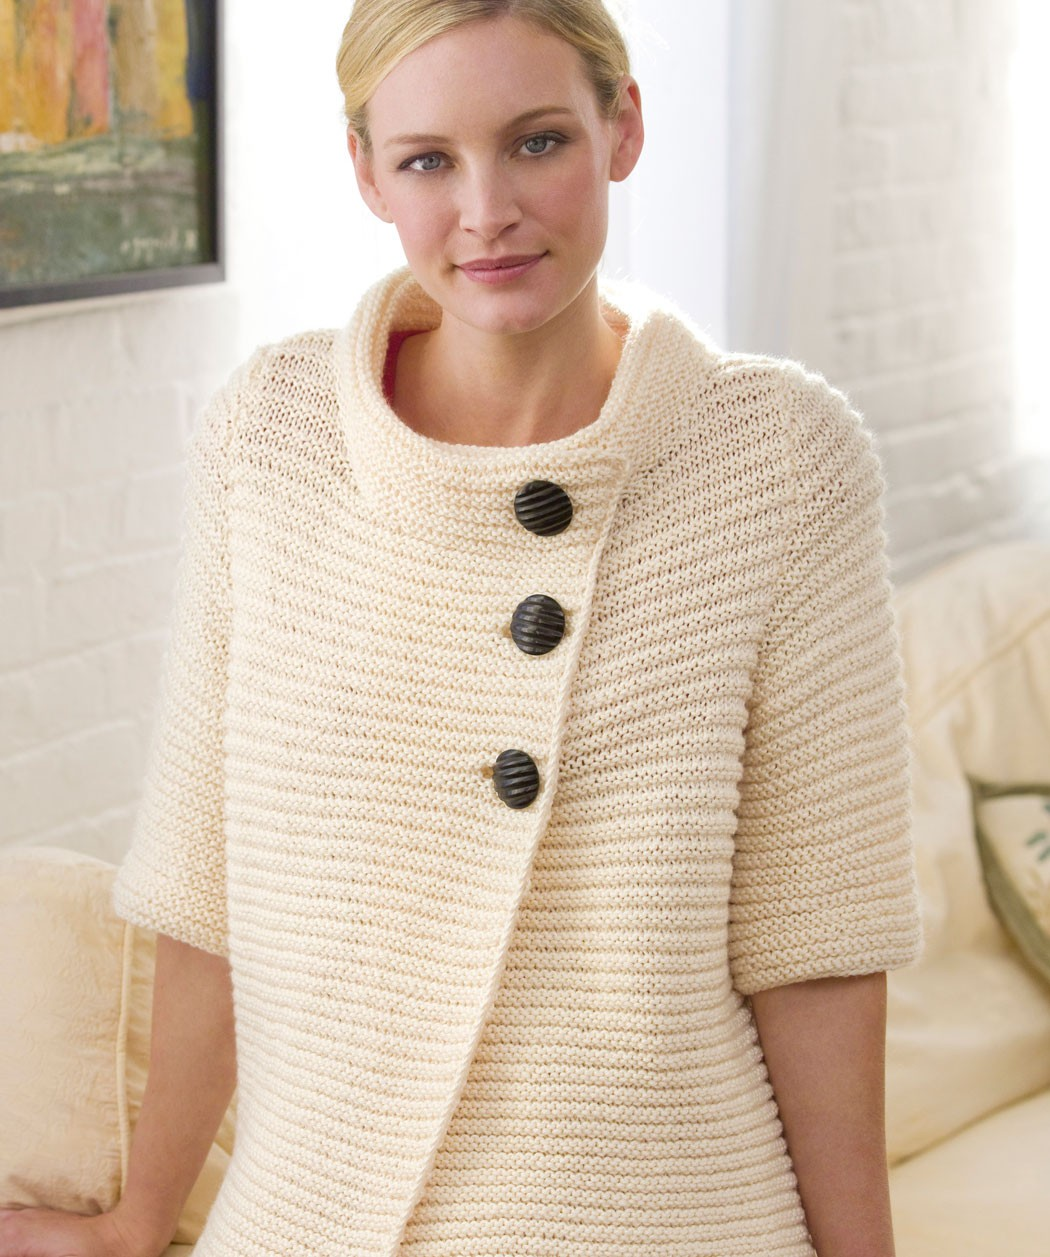 Free Knitted Sweater Patterns For Women : Knitted Sweater Patterns for Women A Knitting Blog